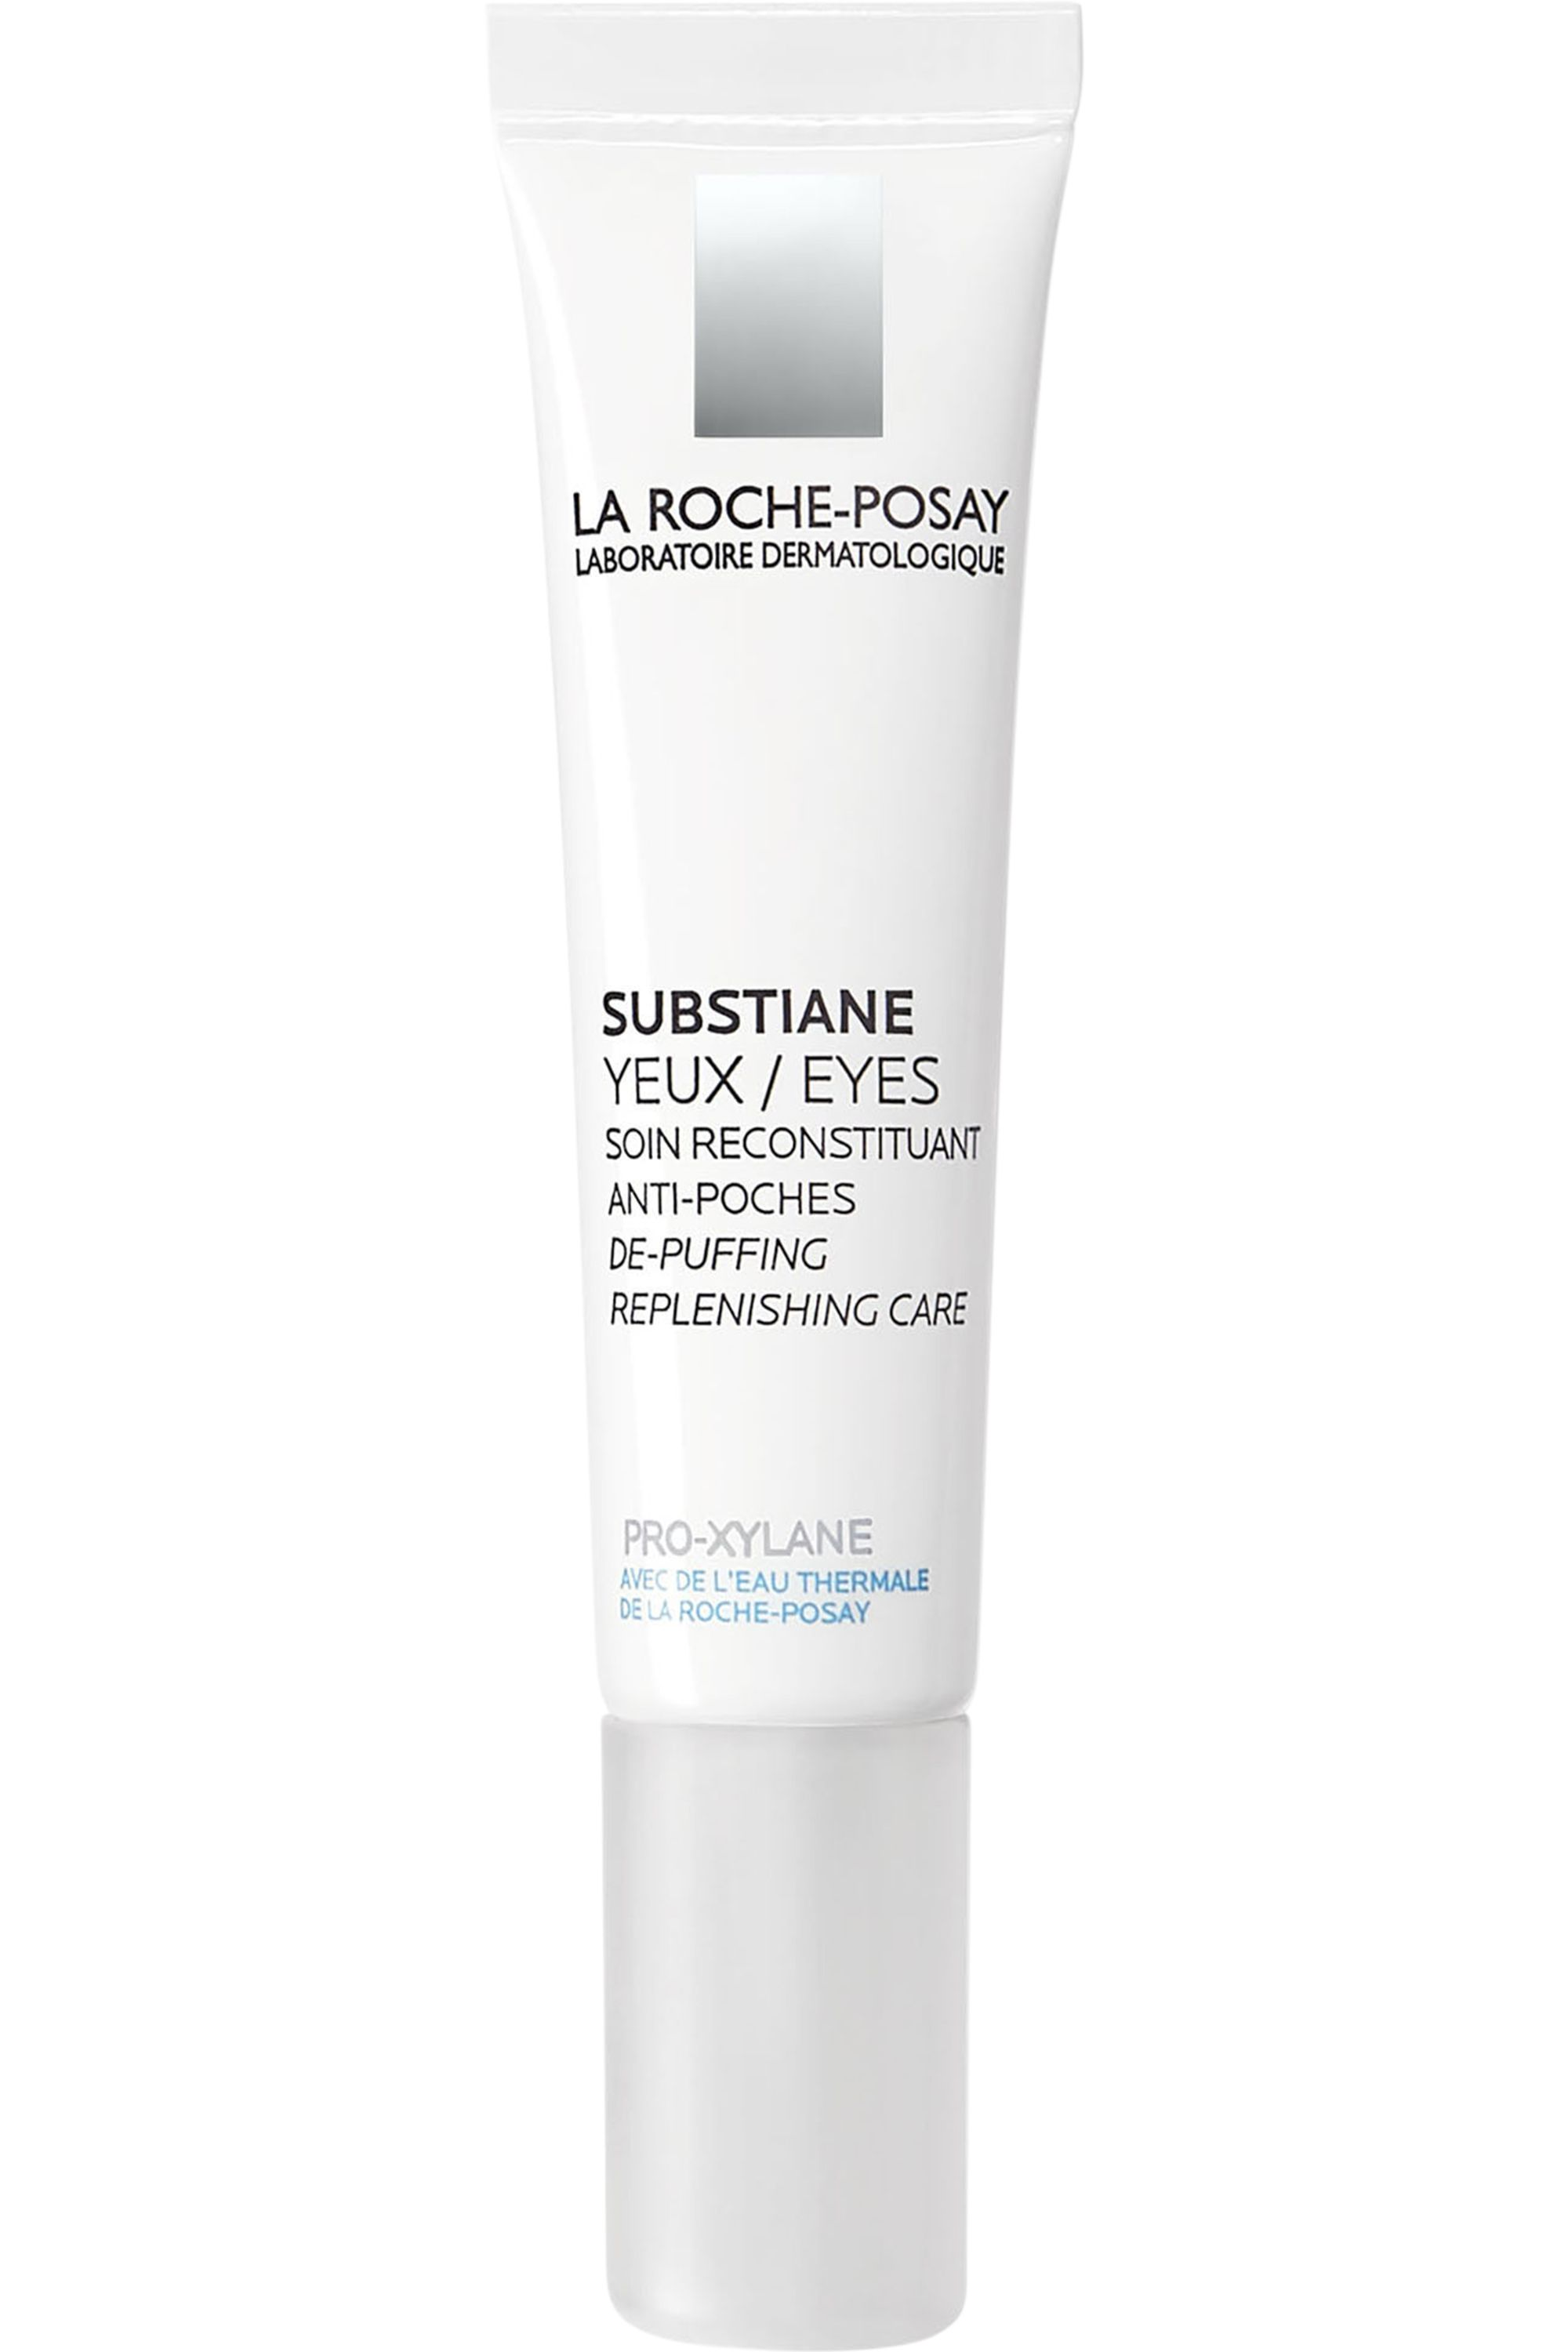 Blissim : La Roche-Posay - Soin yeux reconstituant anti-poches Substiane - Soin yeux reconstituant anti-poches Substiane